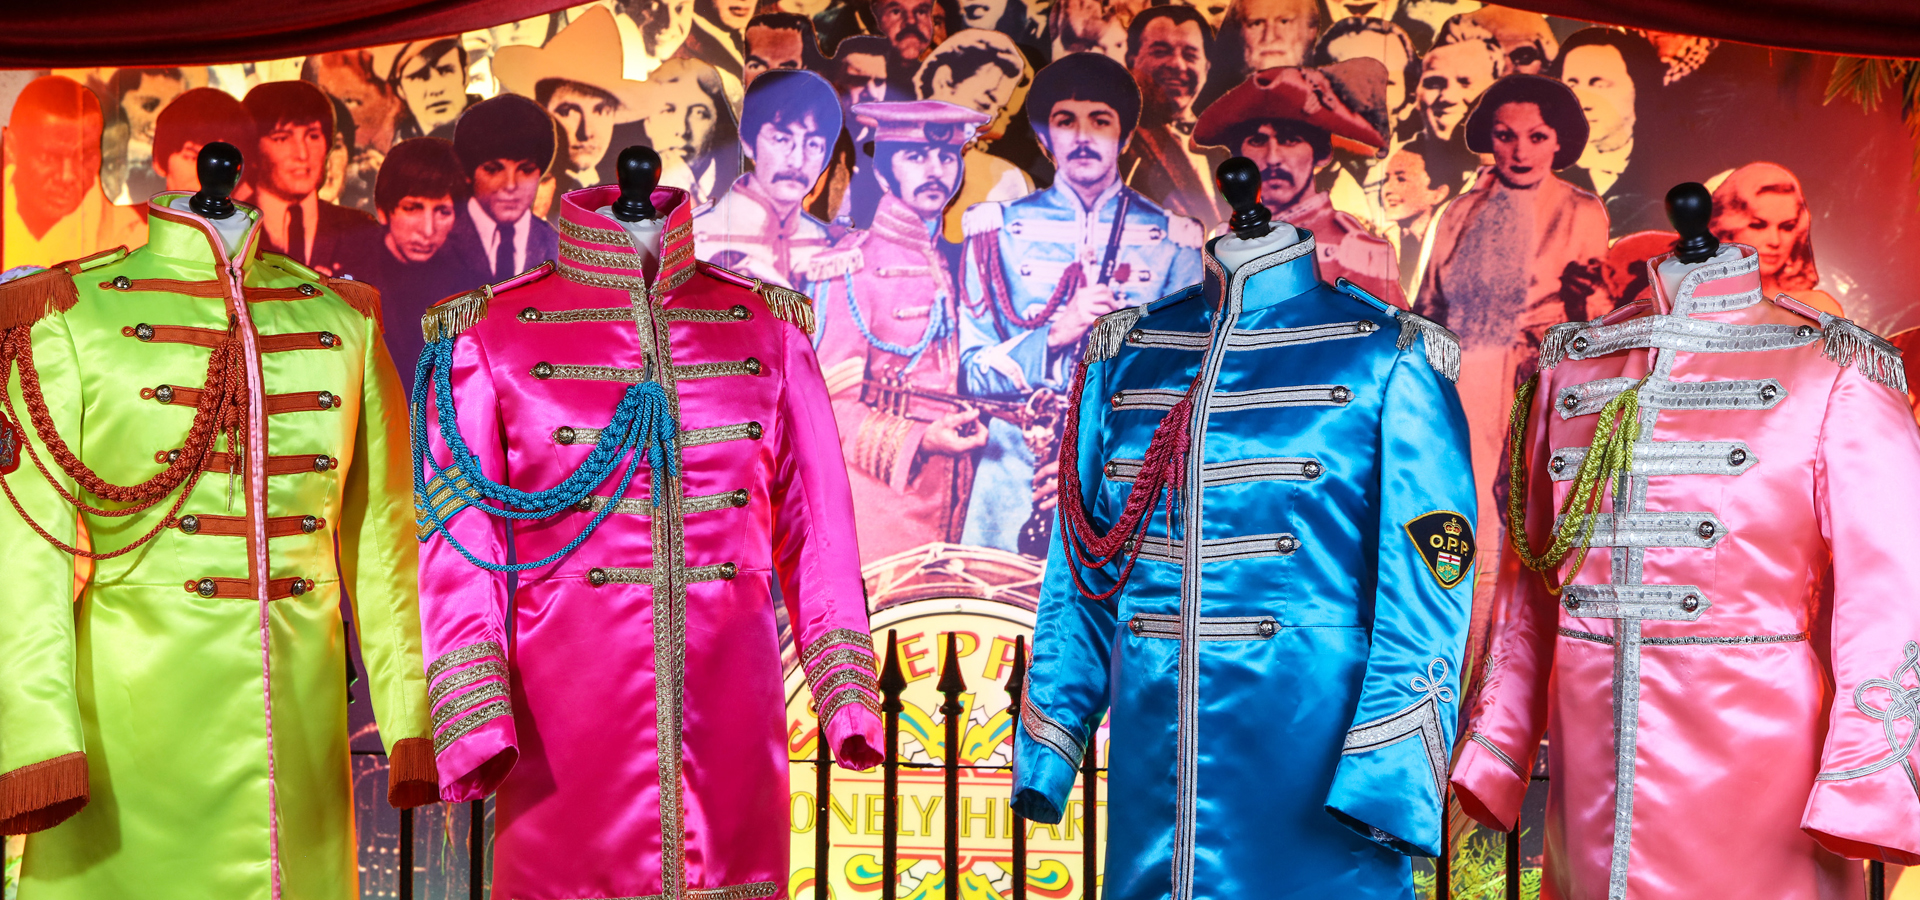 Sgt Pepper Suits A Perfect Fit The Beatles Story Liverpool